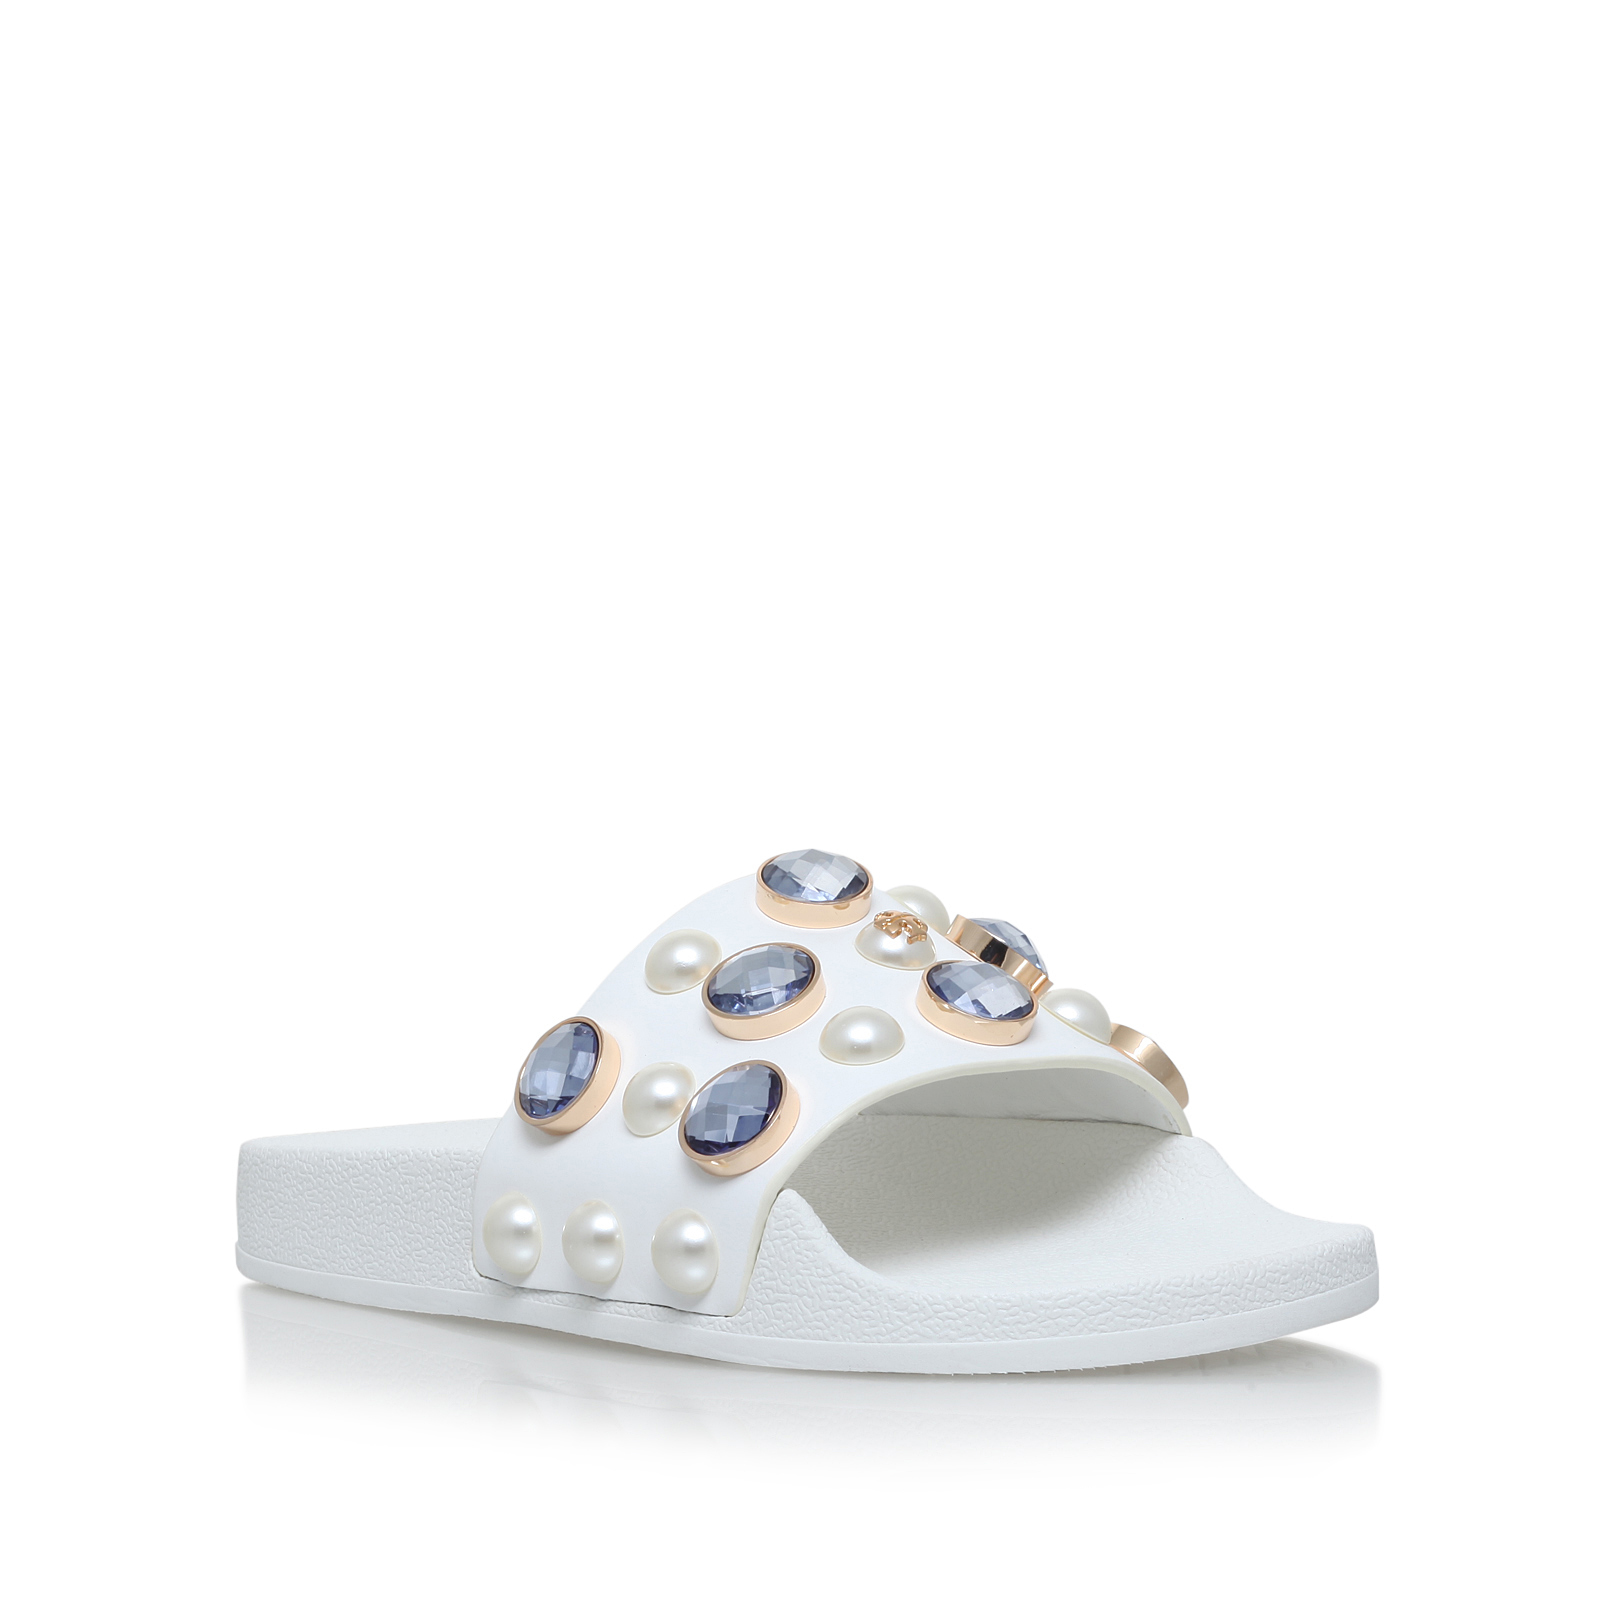 bcfb55911 VALI SLIDE 'Tory Burch Vali Slide White Leather Sandal' by TORY BURCH